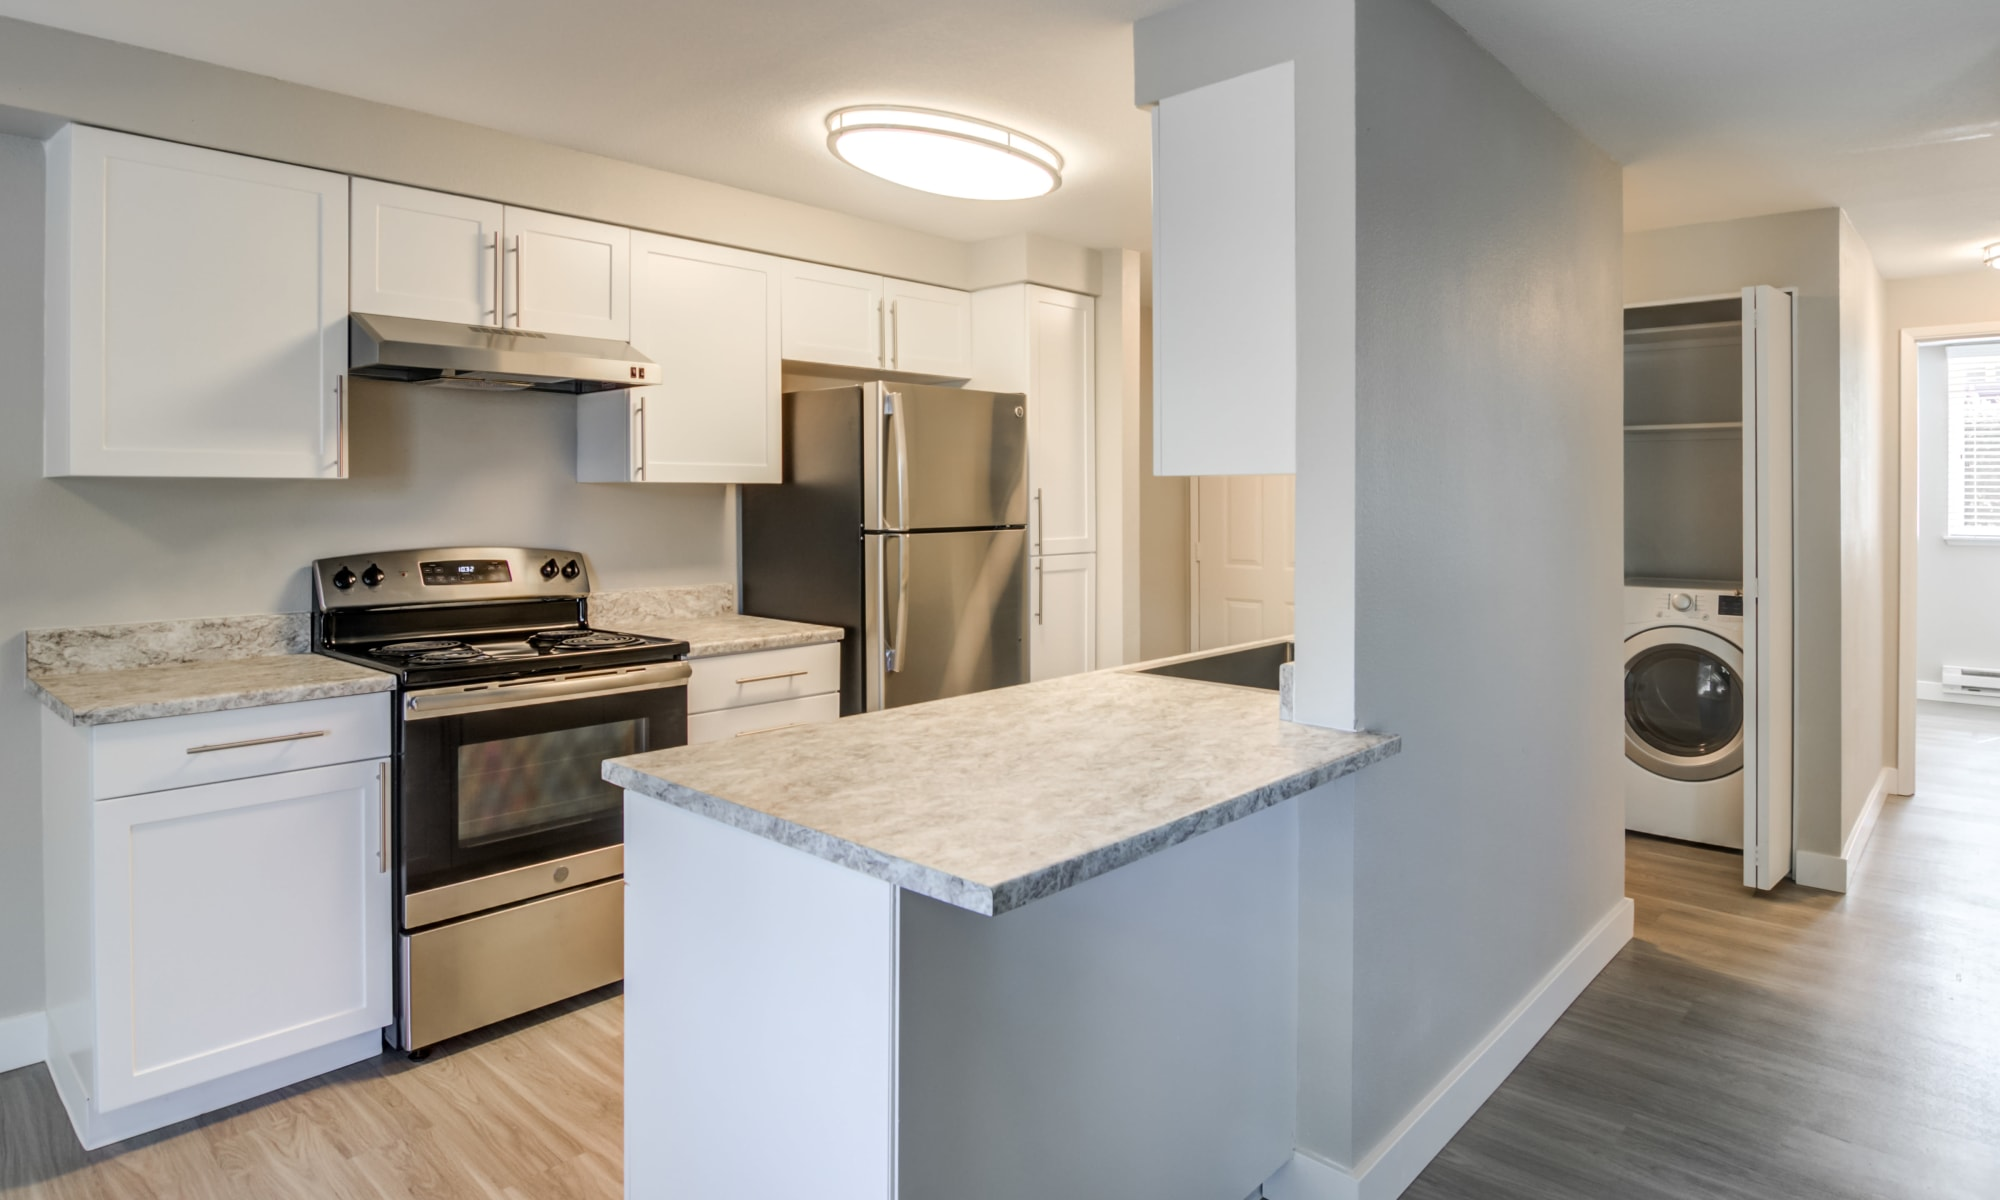 Apartments at Heatherbrae Commons in Milwaukie, Oregon